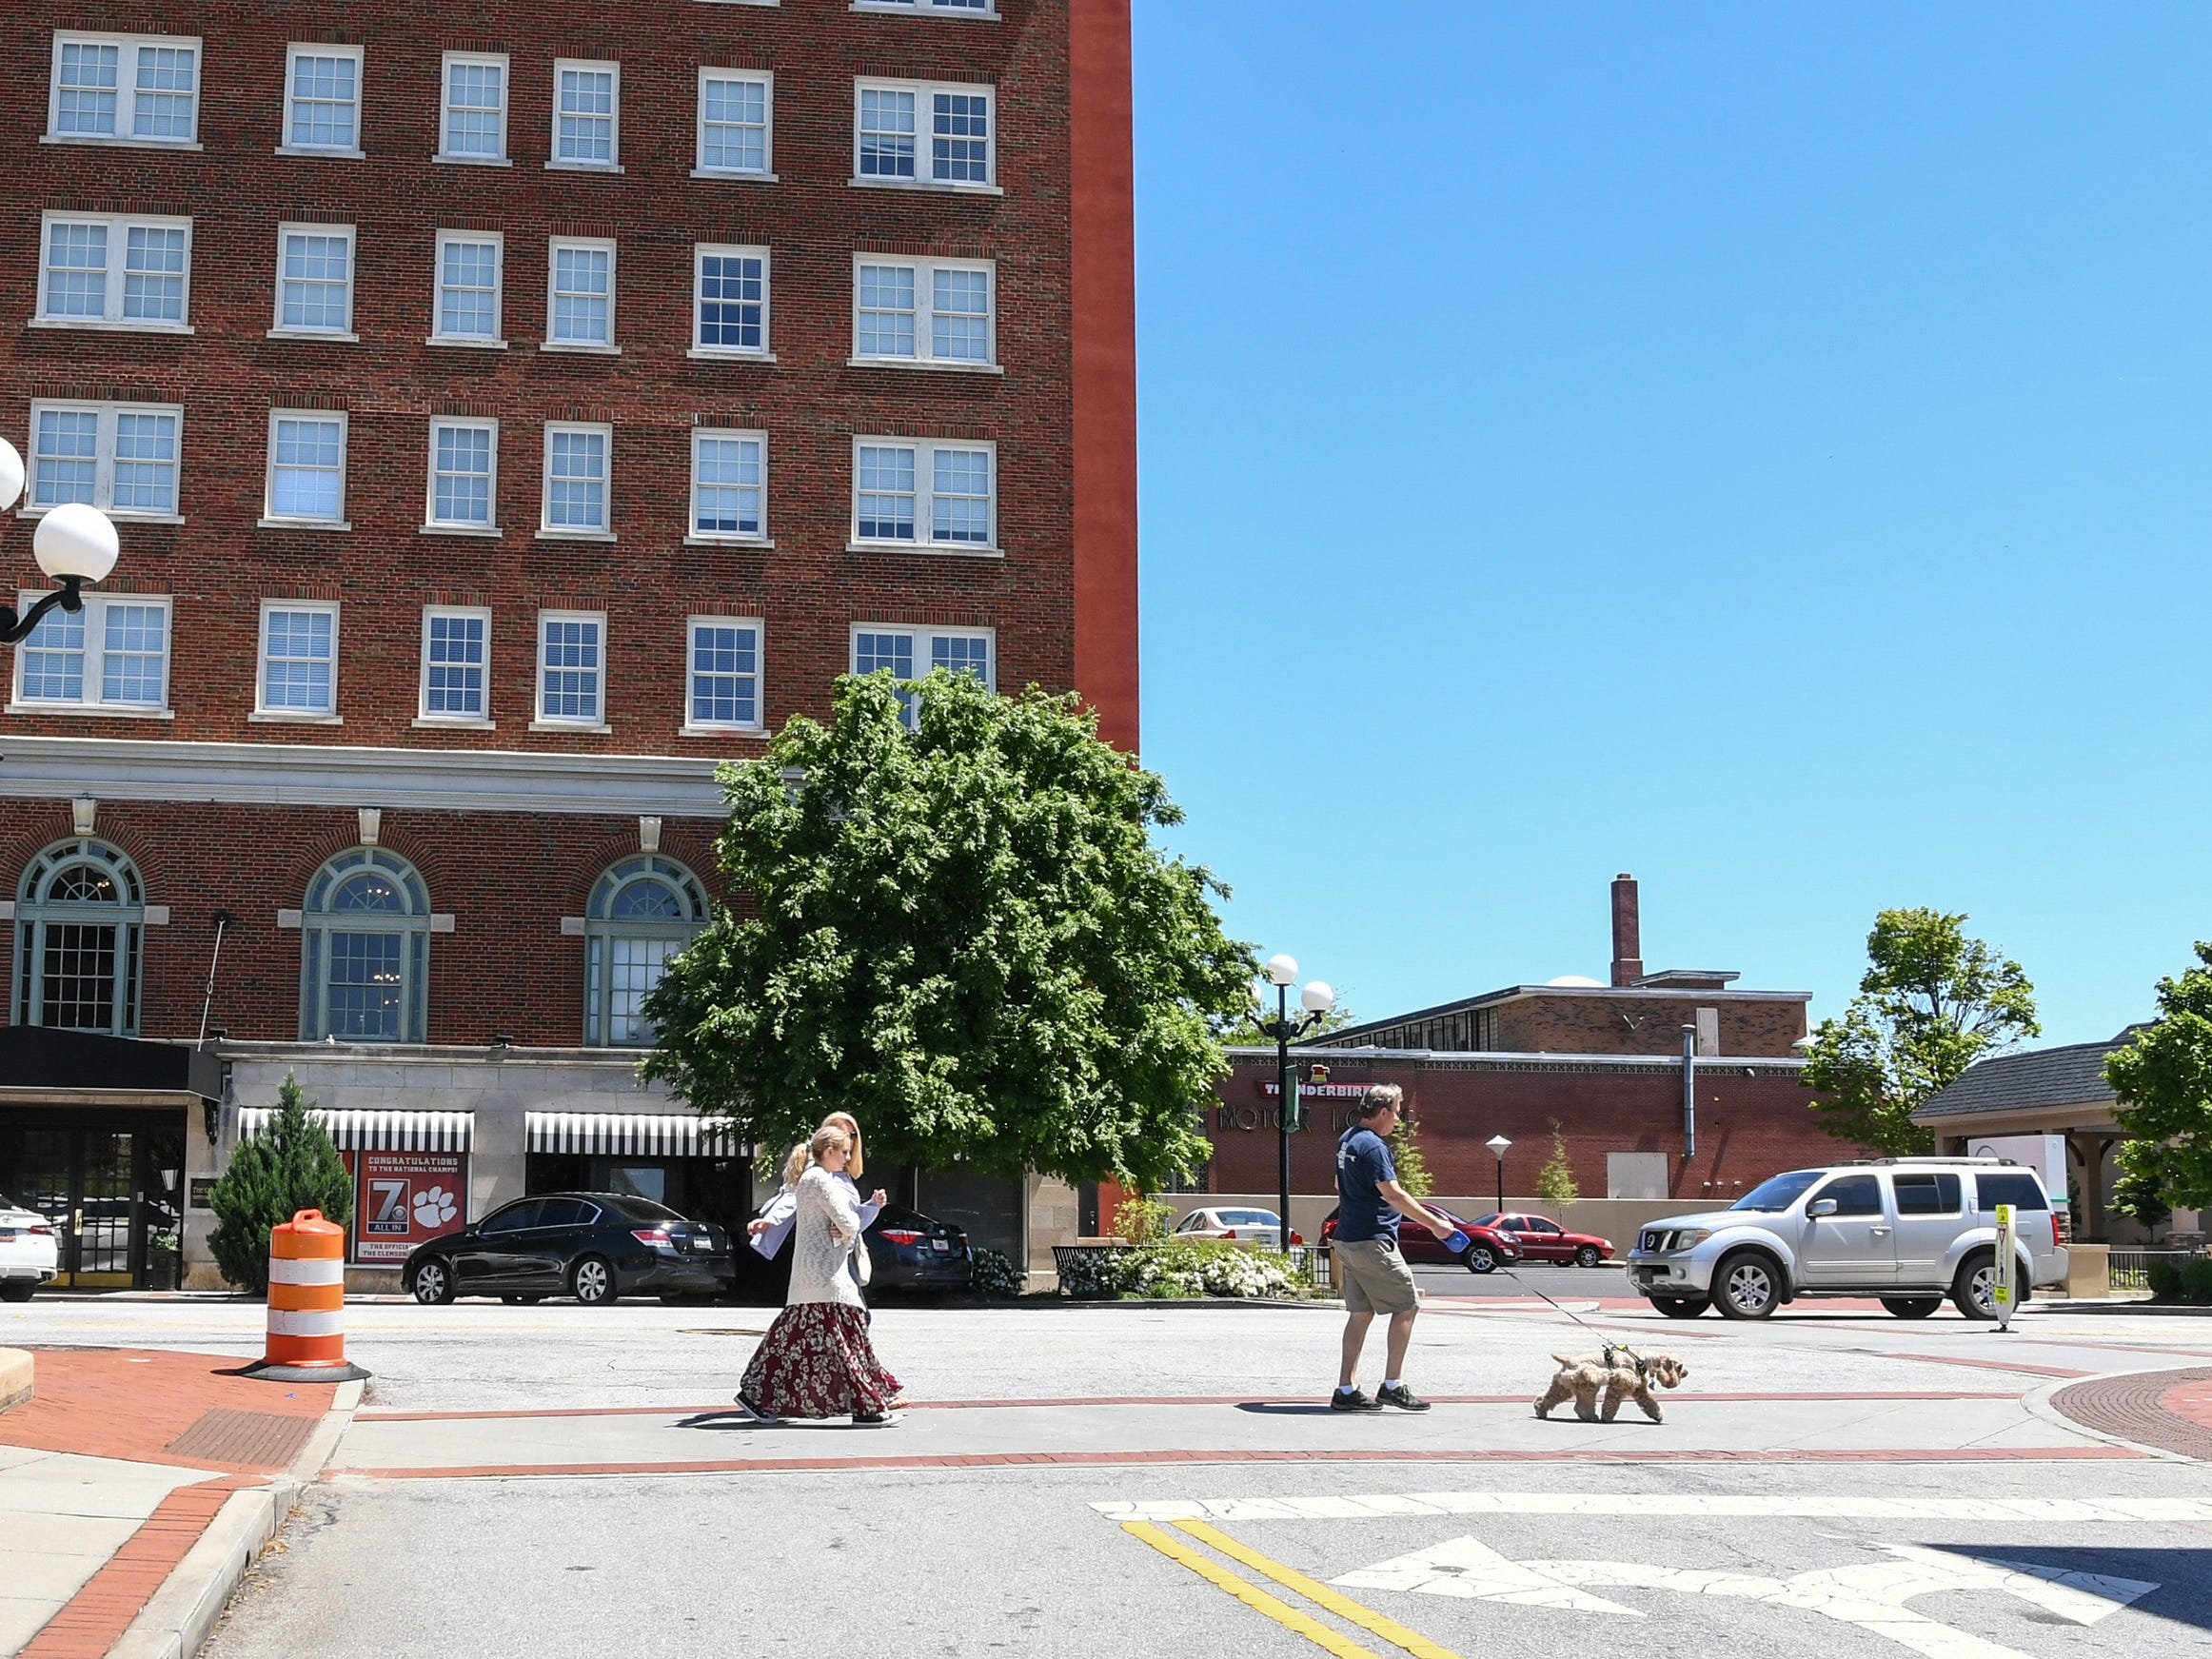 Rick and Ann Kummrow walk their dog with daughter Alexa near The Calhoun Lofts Apartments, across the street from the building they bought at 401 North Main Street in downtown Anderson. The couple pitched their plan to create The Historic Postmark Anderson, a mix of housing upstairs, retail on the main floor, and possibly a restaurant downstairs. The structure built in 1909 was previously a funeral home, and before that a United States Post Office.